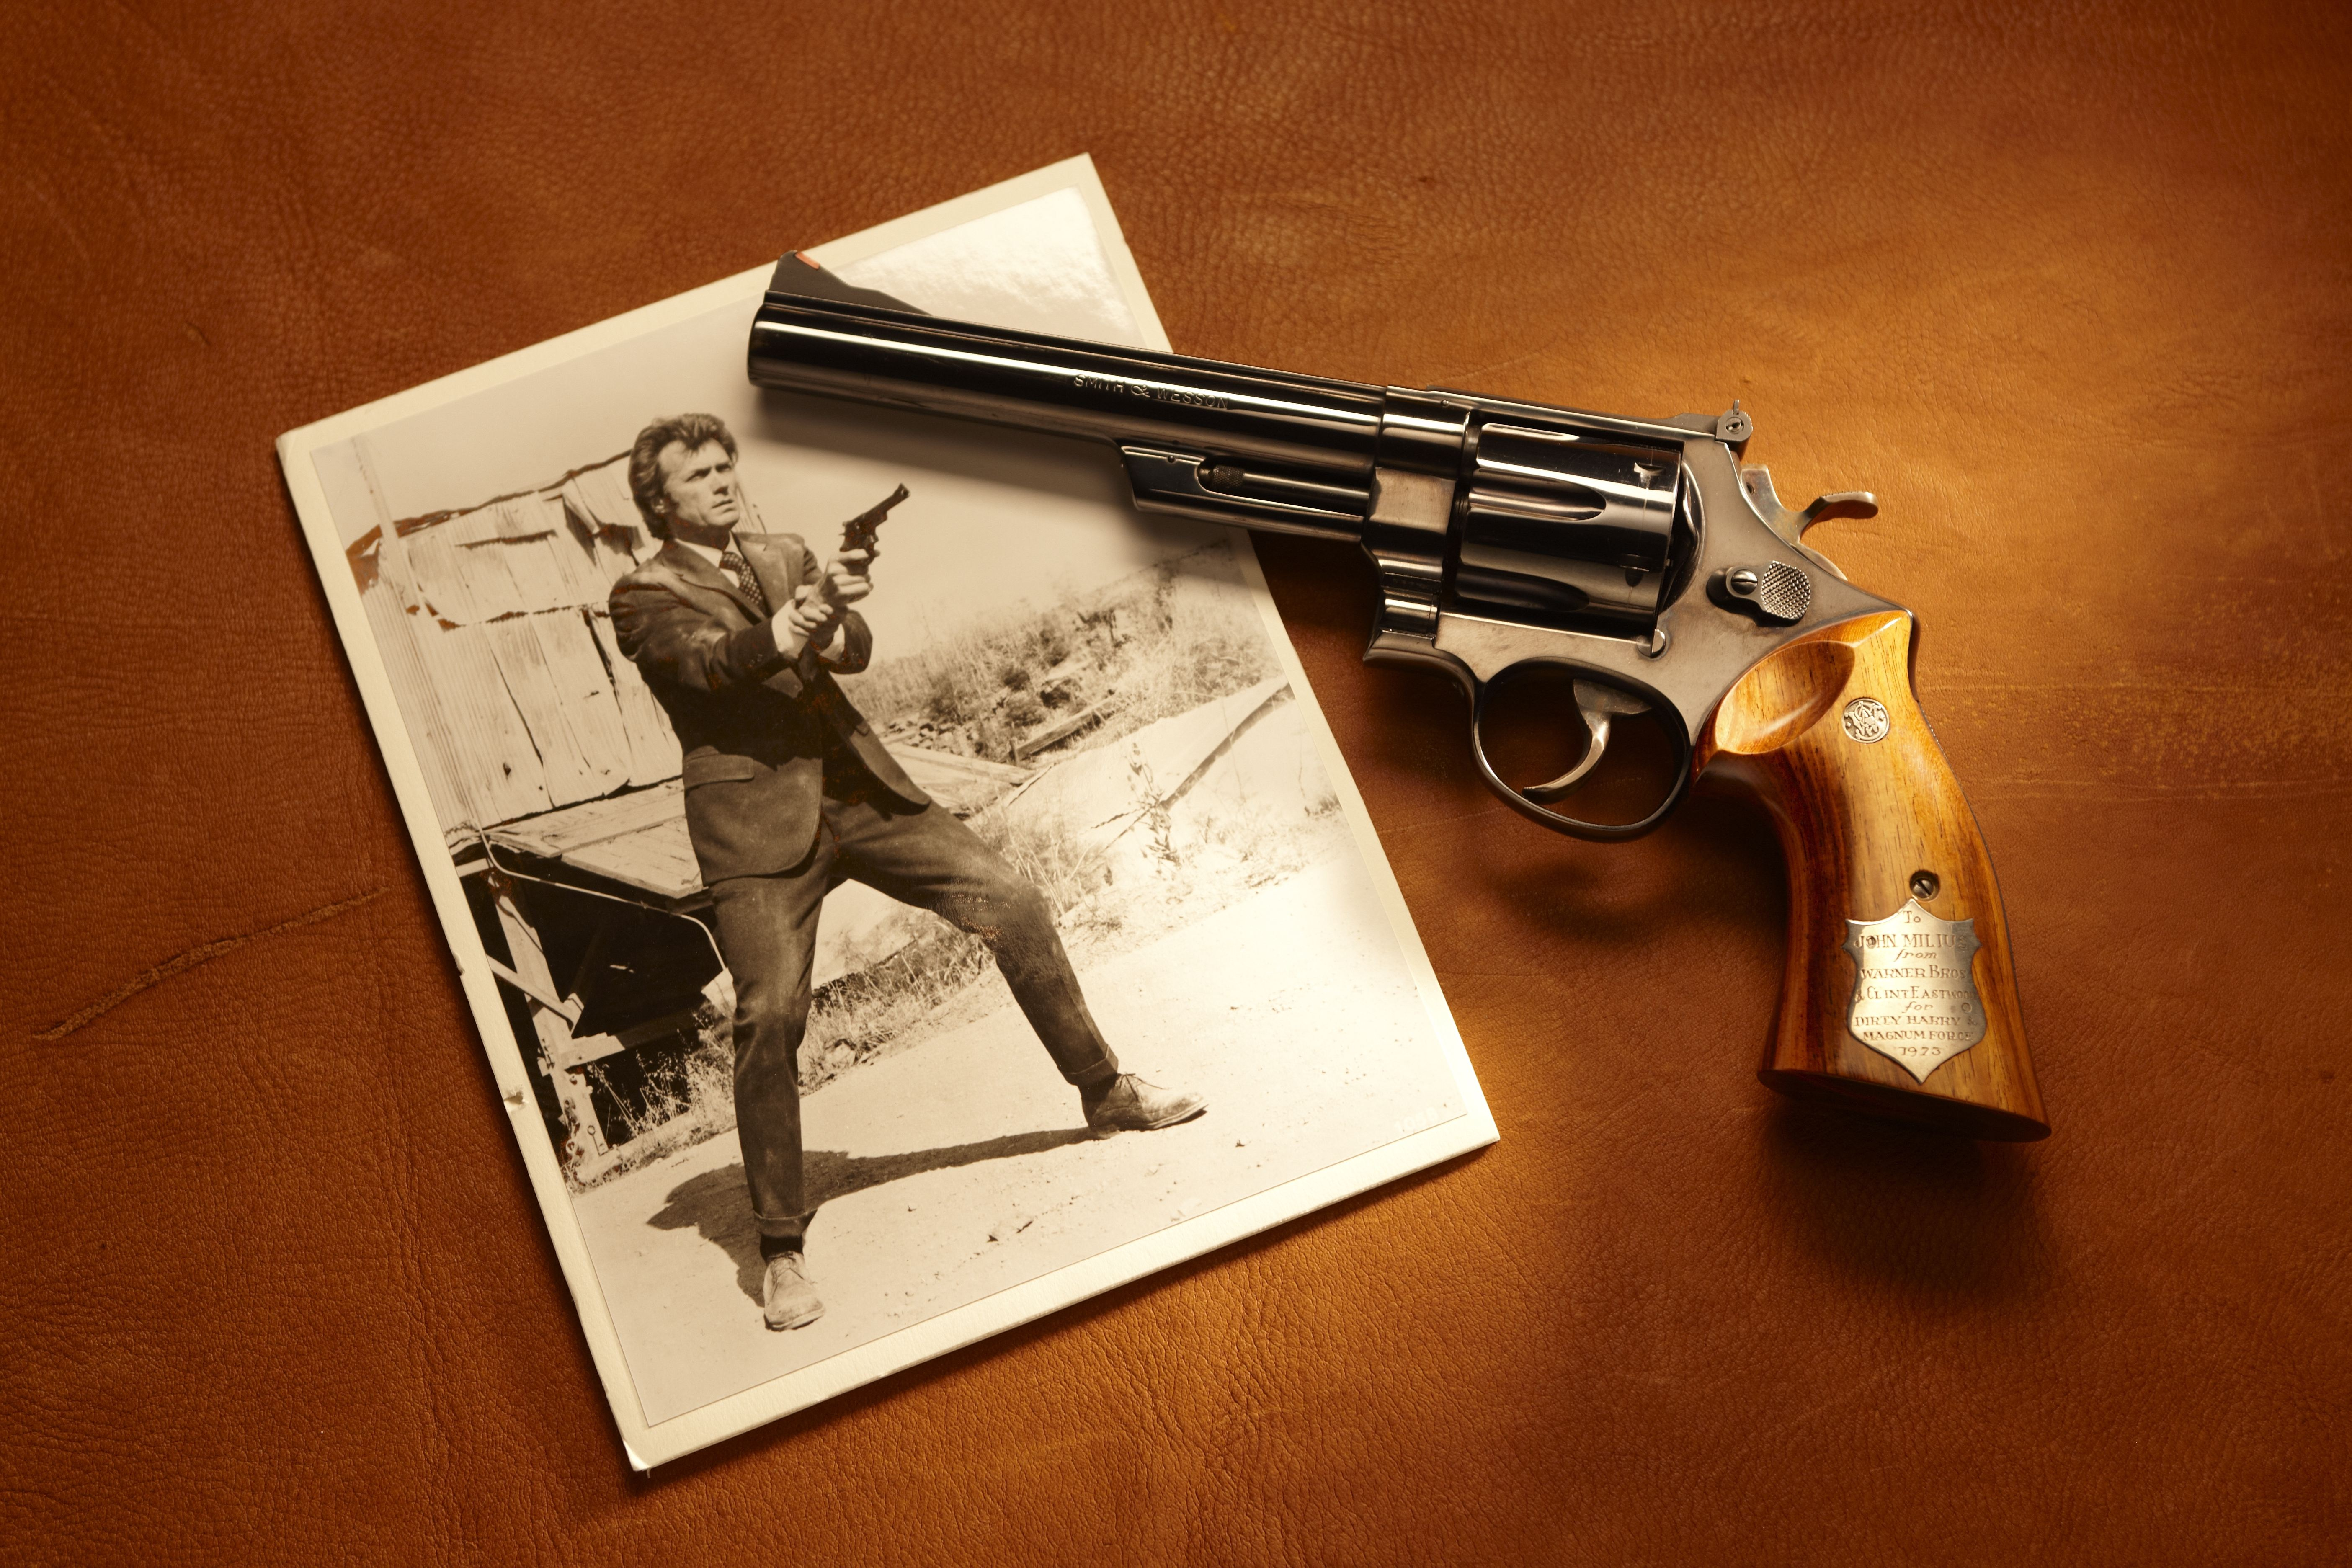 Dirty Harry's Smith & Wesson .44 Magnum